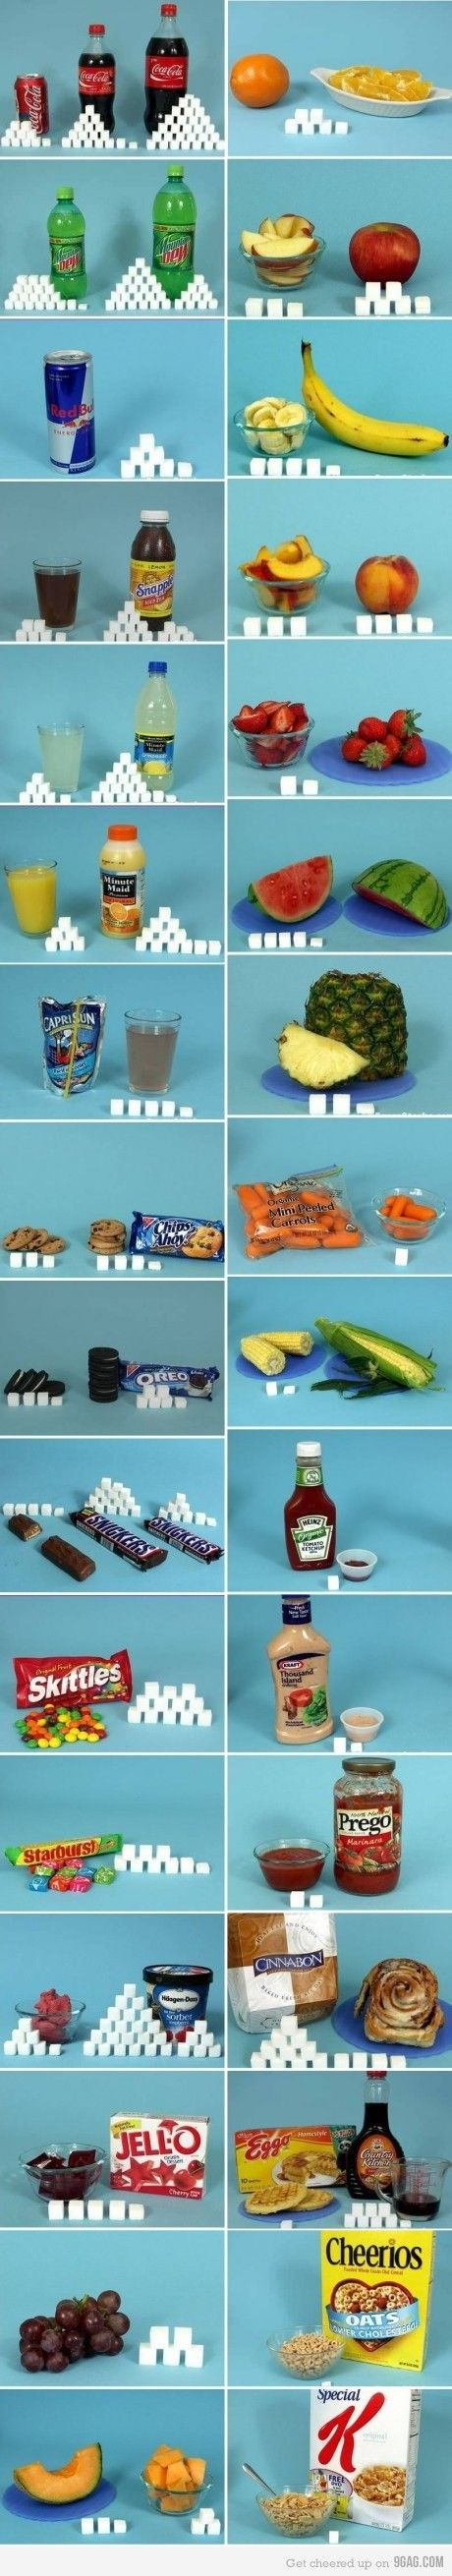 34 best Portion control images on Pinterest | Eat healthy, Healthy ...